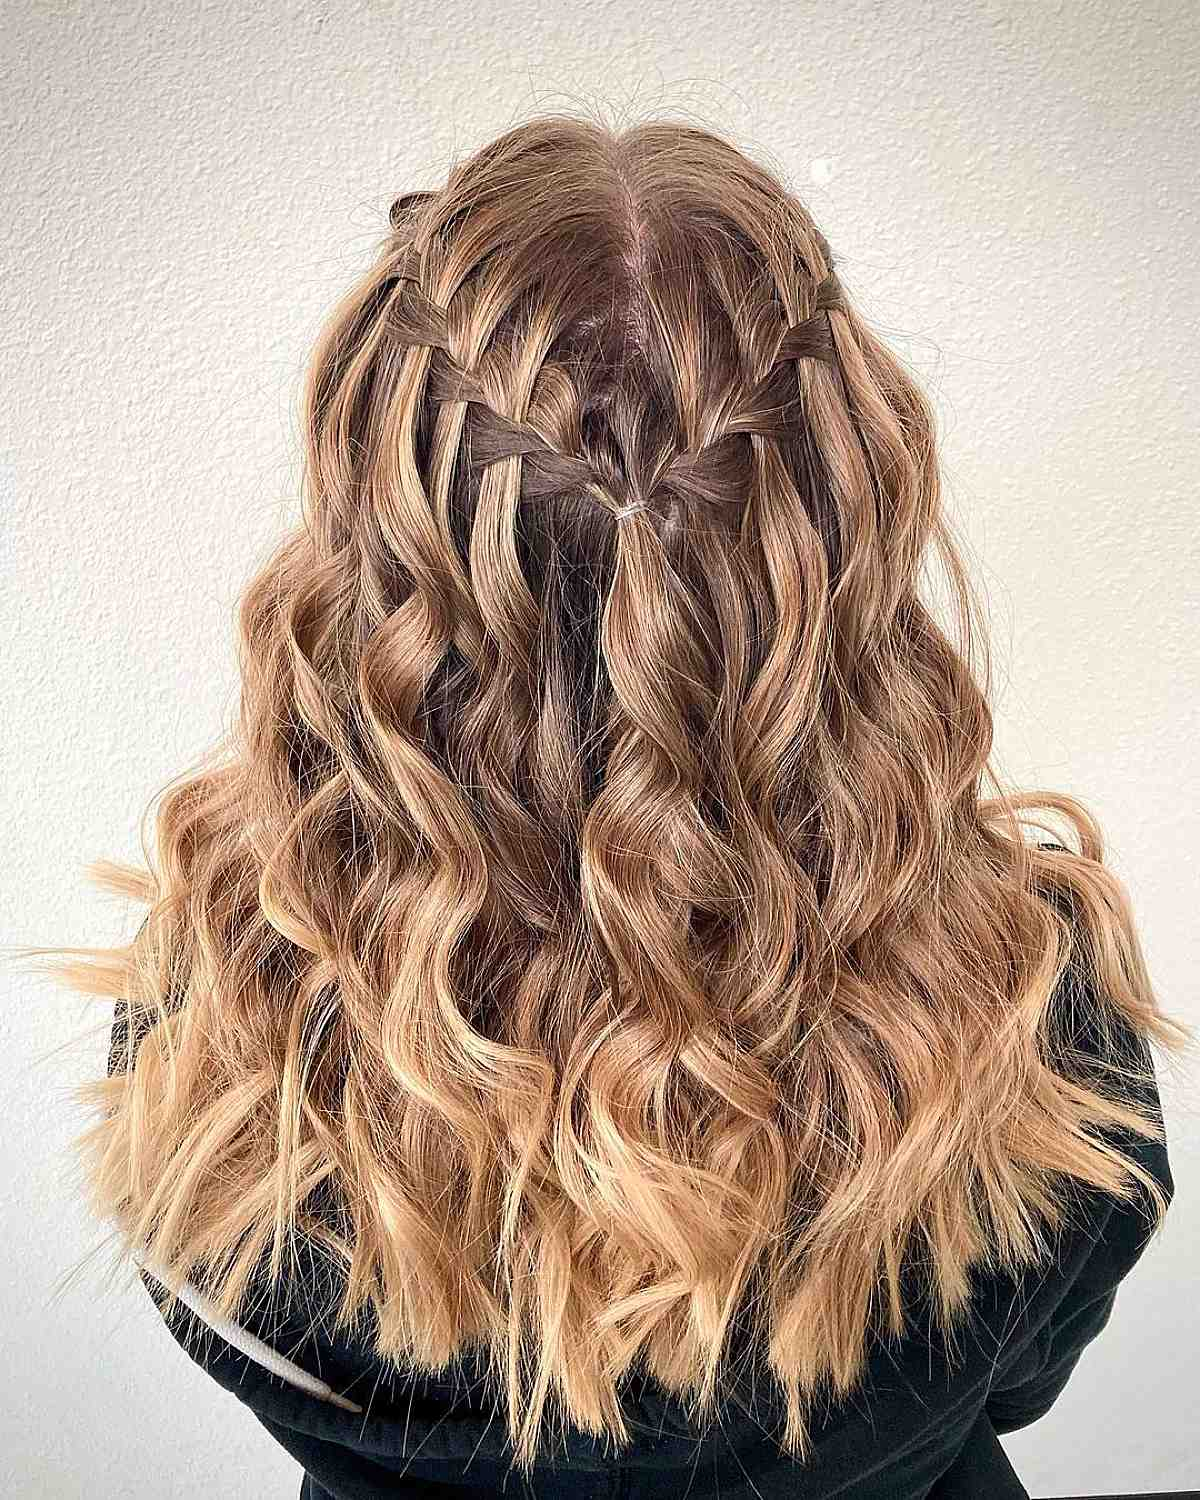 Waterfall Braid with Curls and Waves